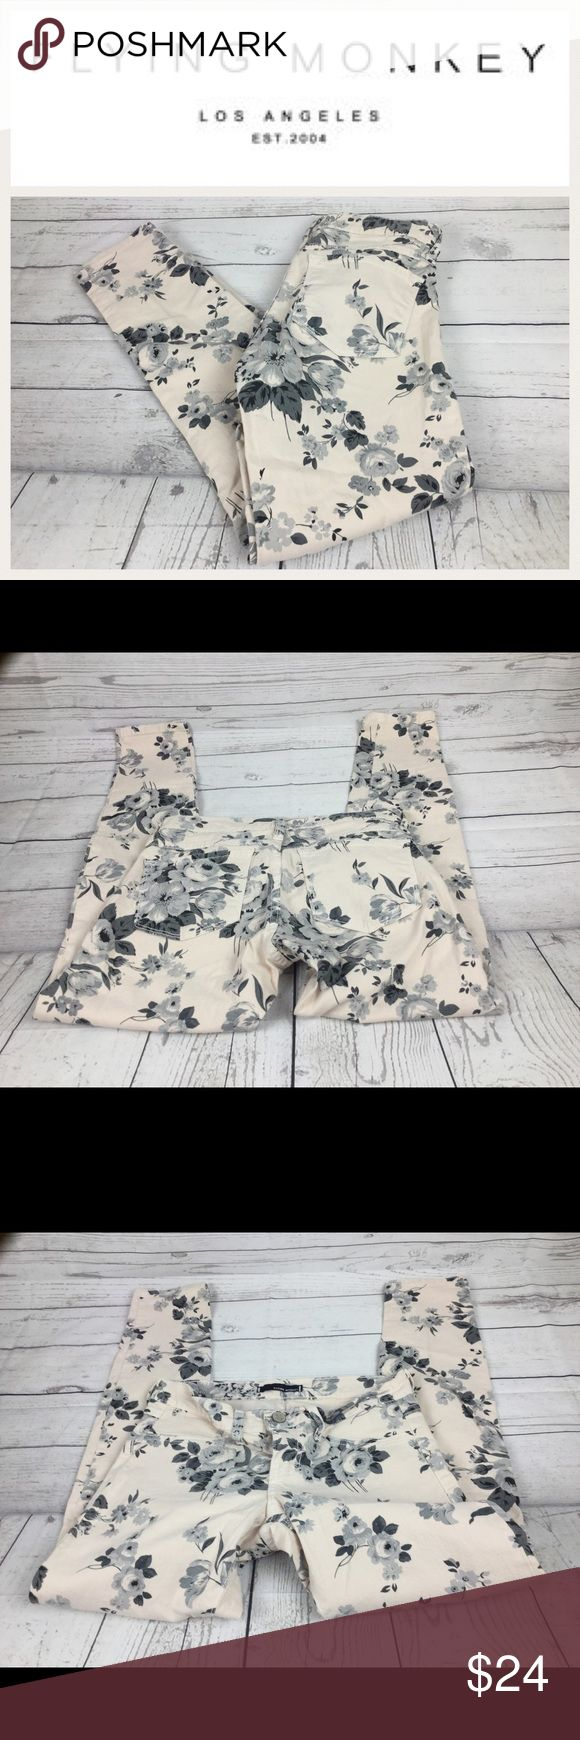 """Flying Monkey Black & White Floral Jeans.  Sz 3 Flying Monkey Black & White Floral Jeans.  Sz 3. Waist 13"""". Inseam 25"""". Rise 6.5"""". In good shape.  Cropped Ankle. Flying Monkey Jeans Ankle & Cropped"""